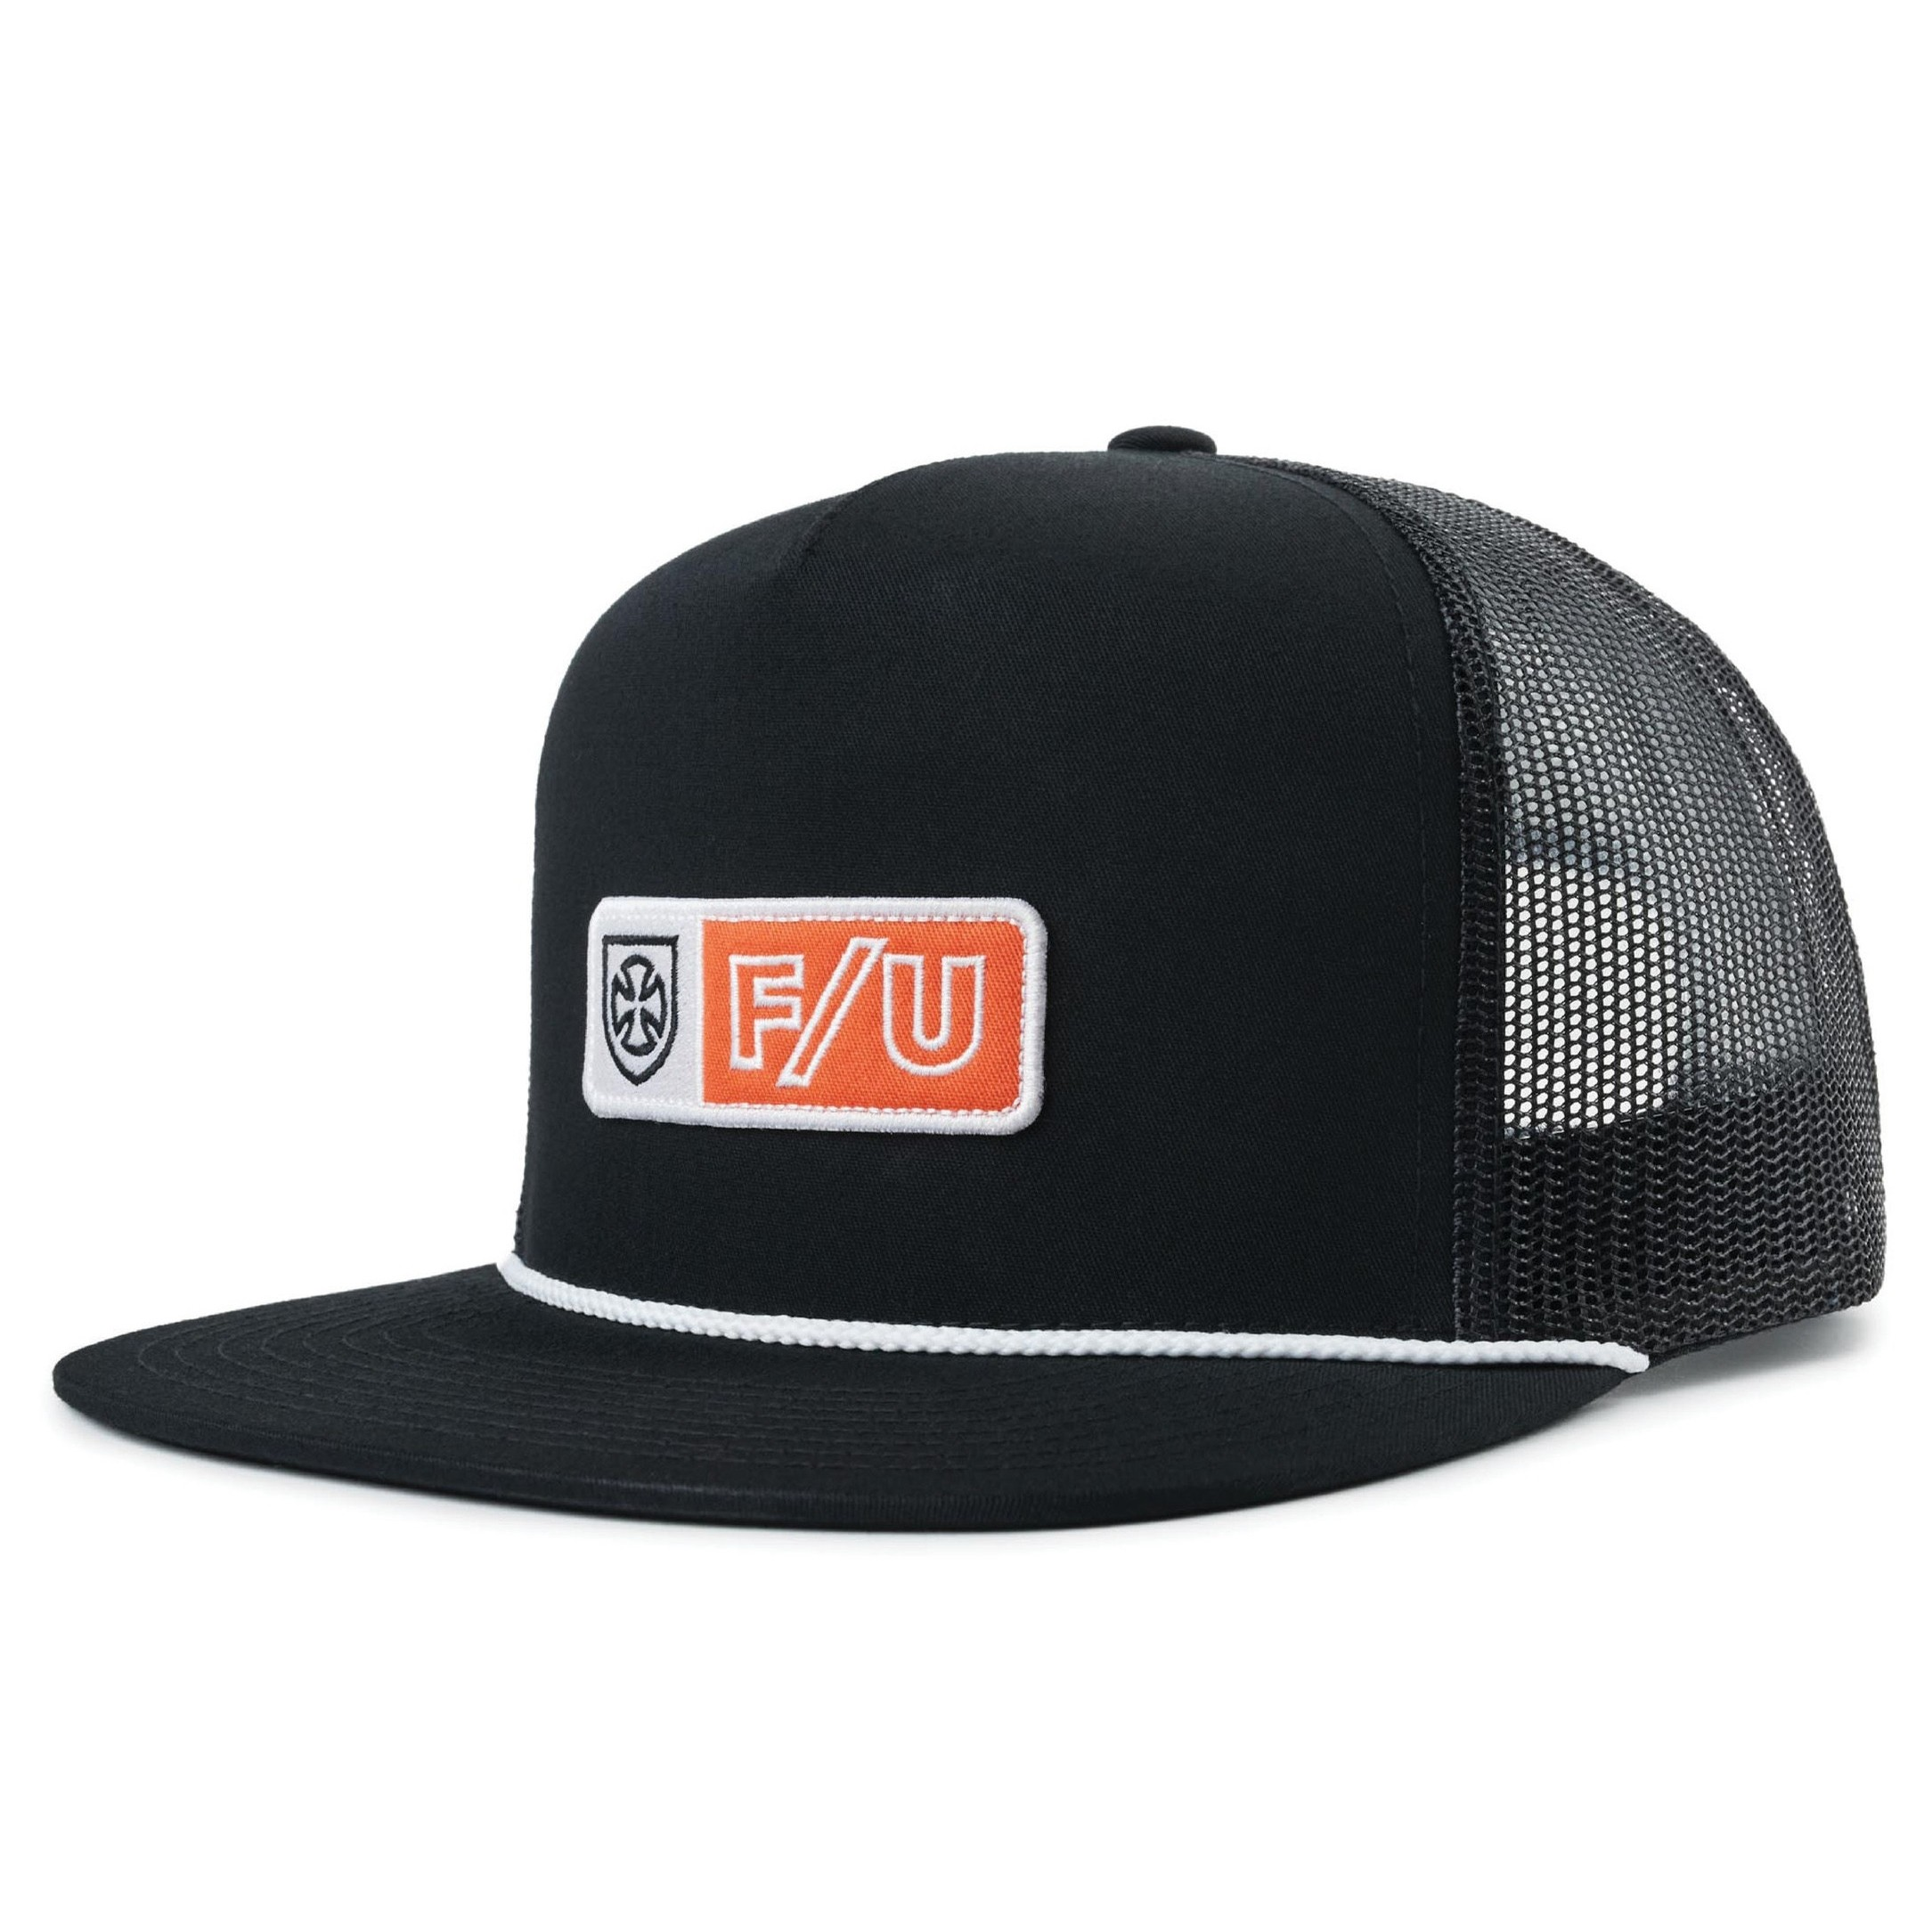 Turnpike HP Mesh Cap (Black)